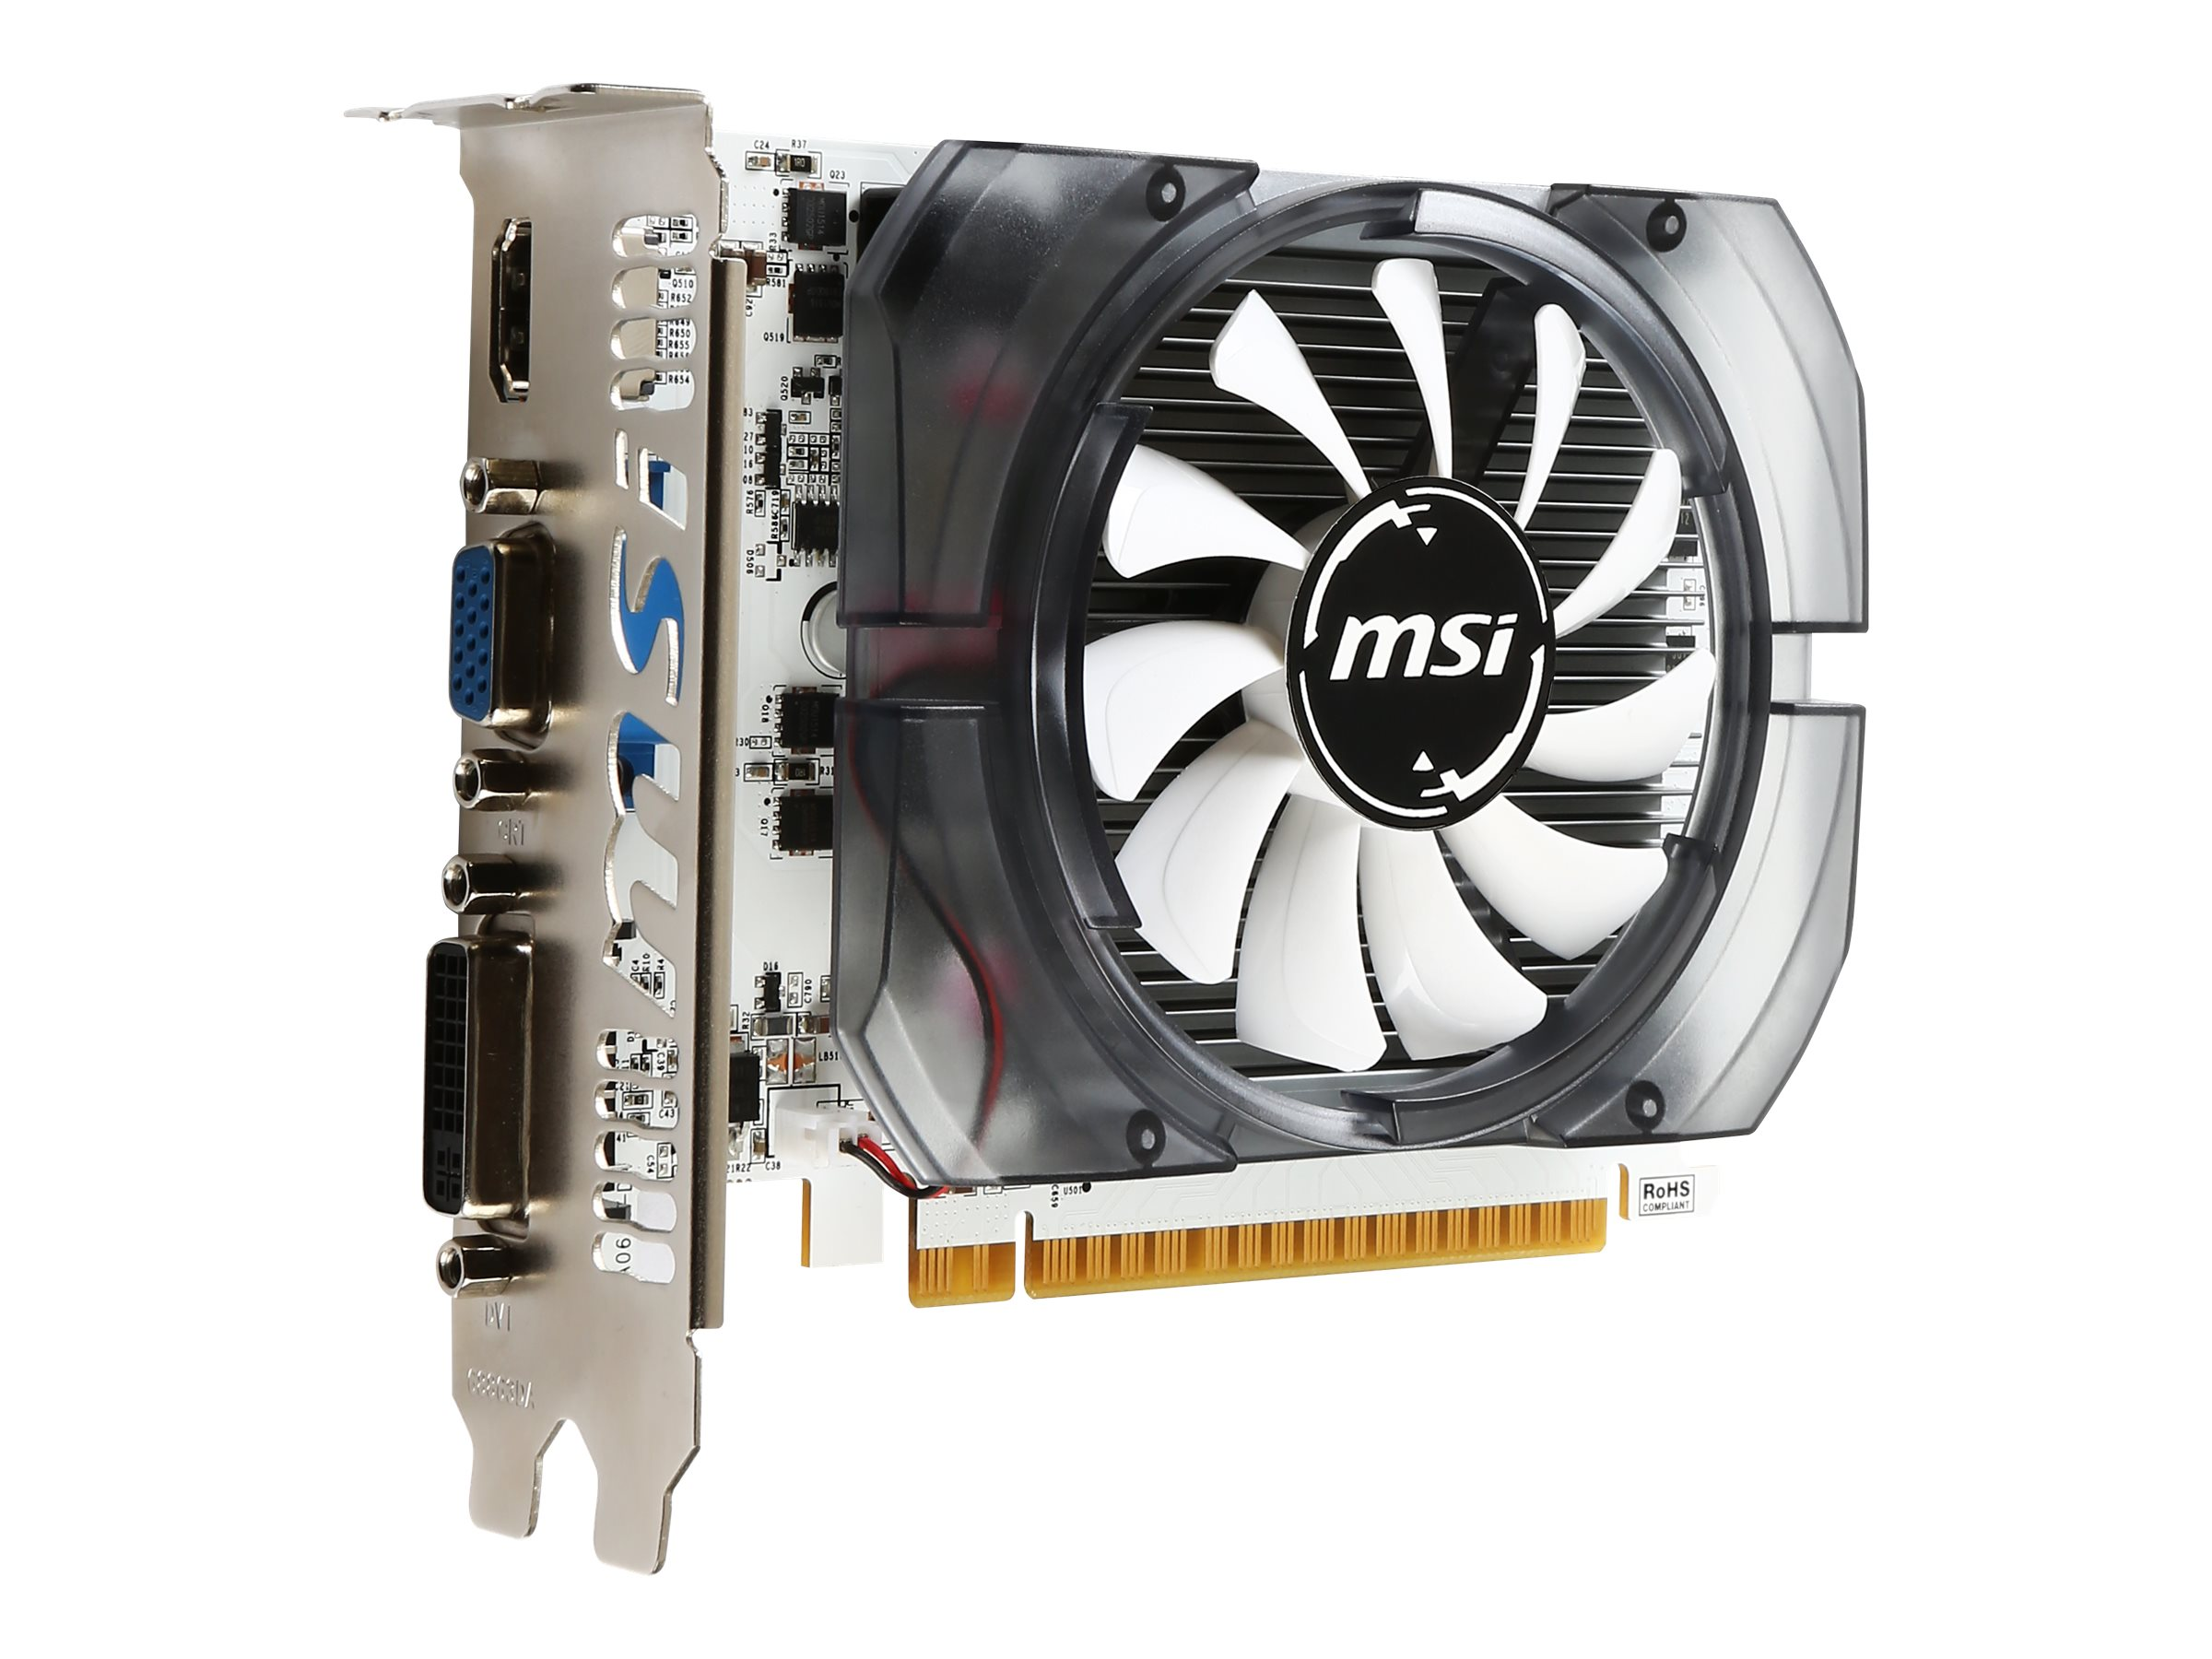 Microstar NVIDIA GeForce GT 730 PCIe 2.0 x16 Graphics Card, 2GB DDR3, N730 2GD3V3